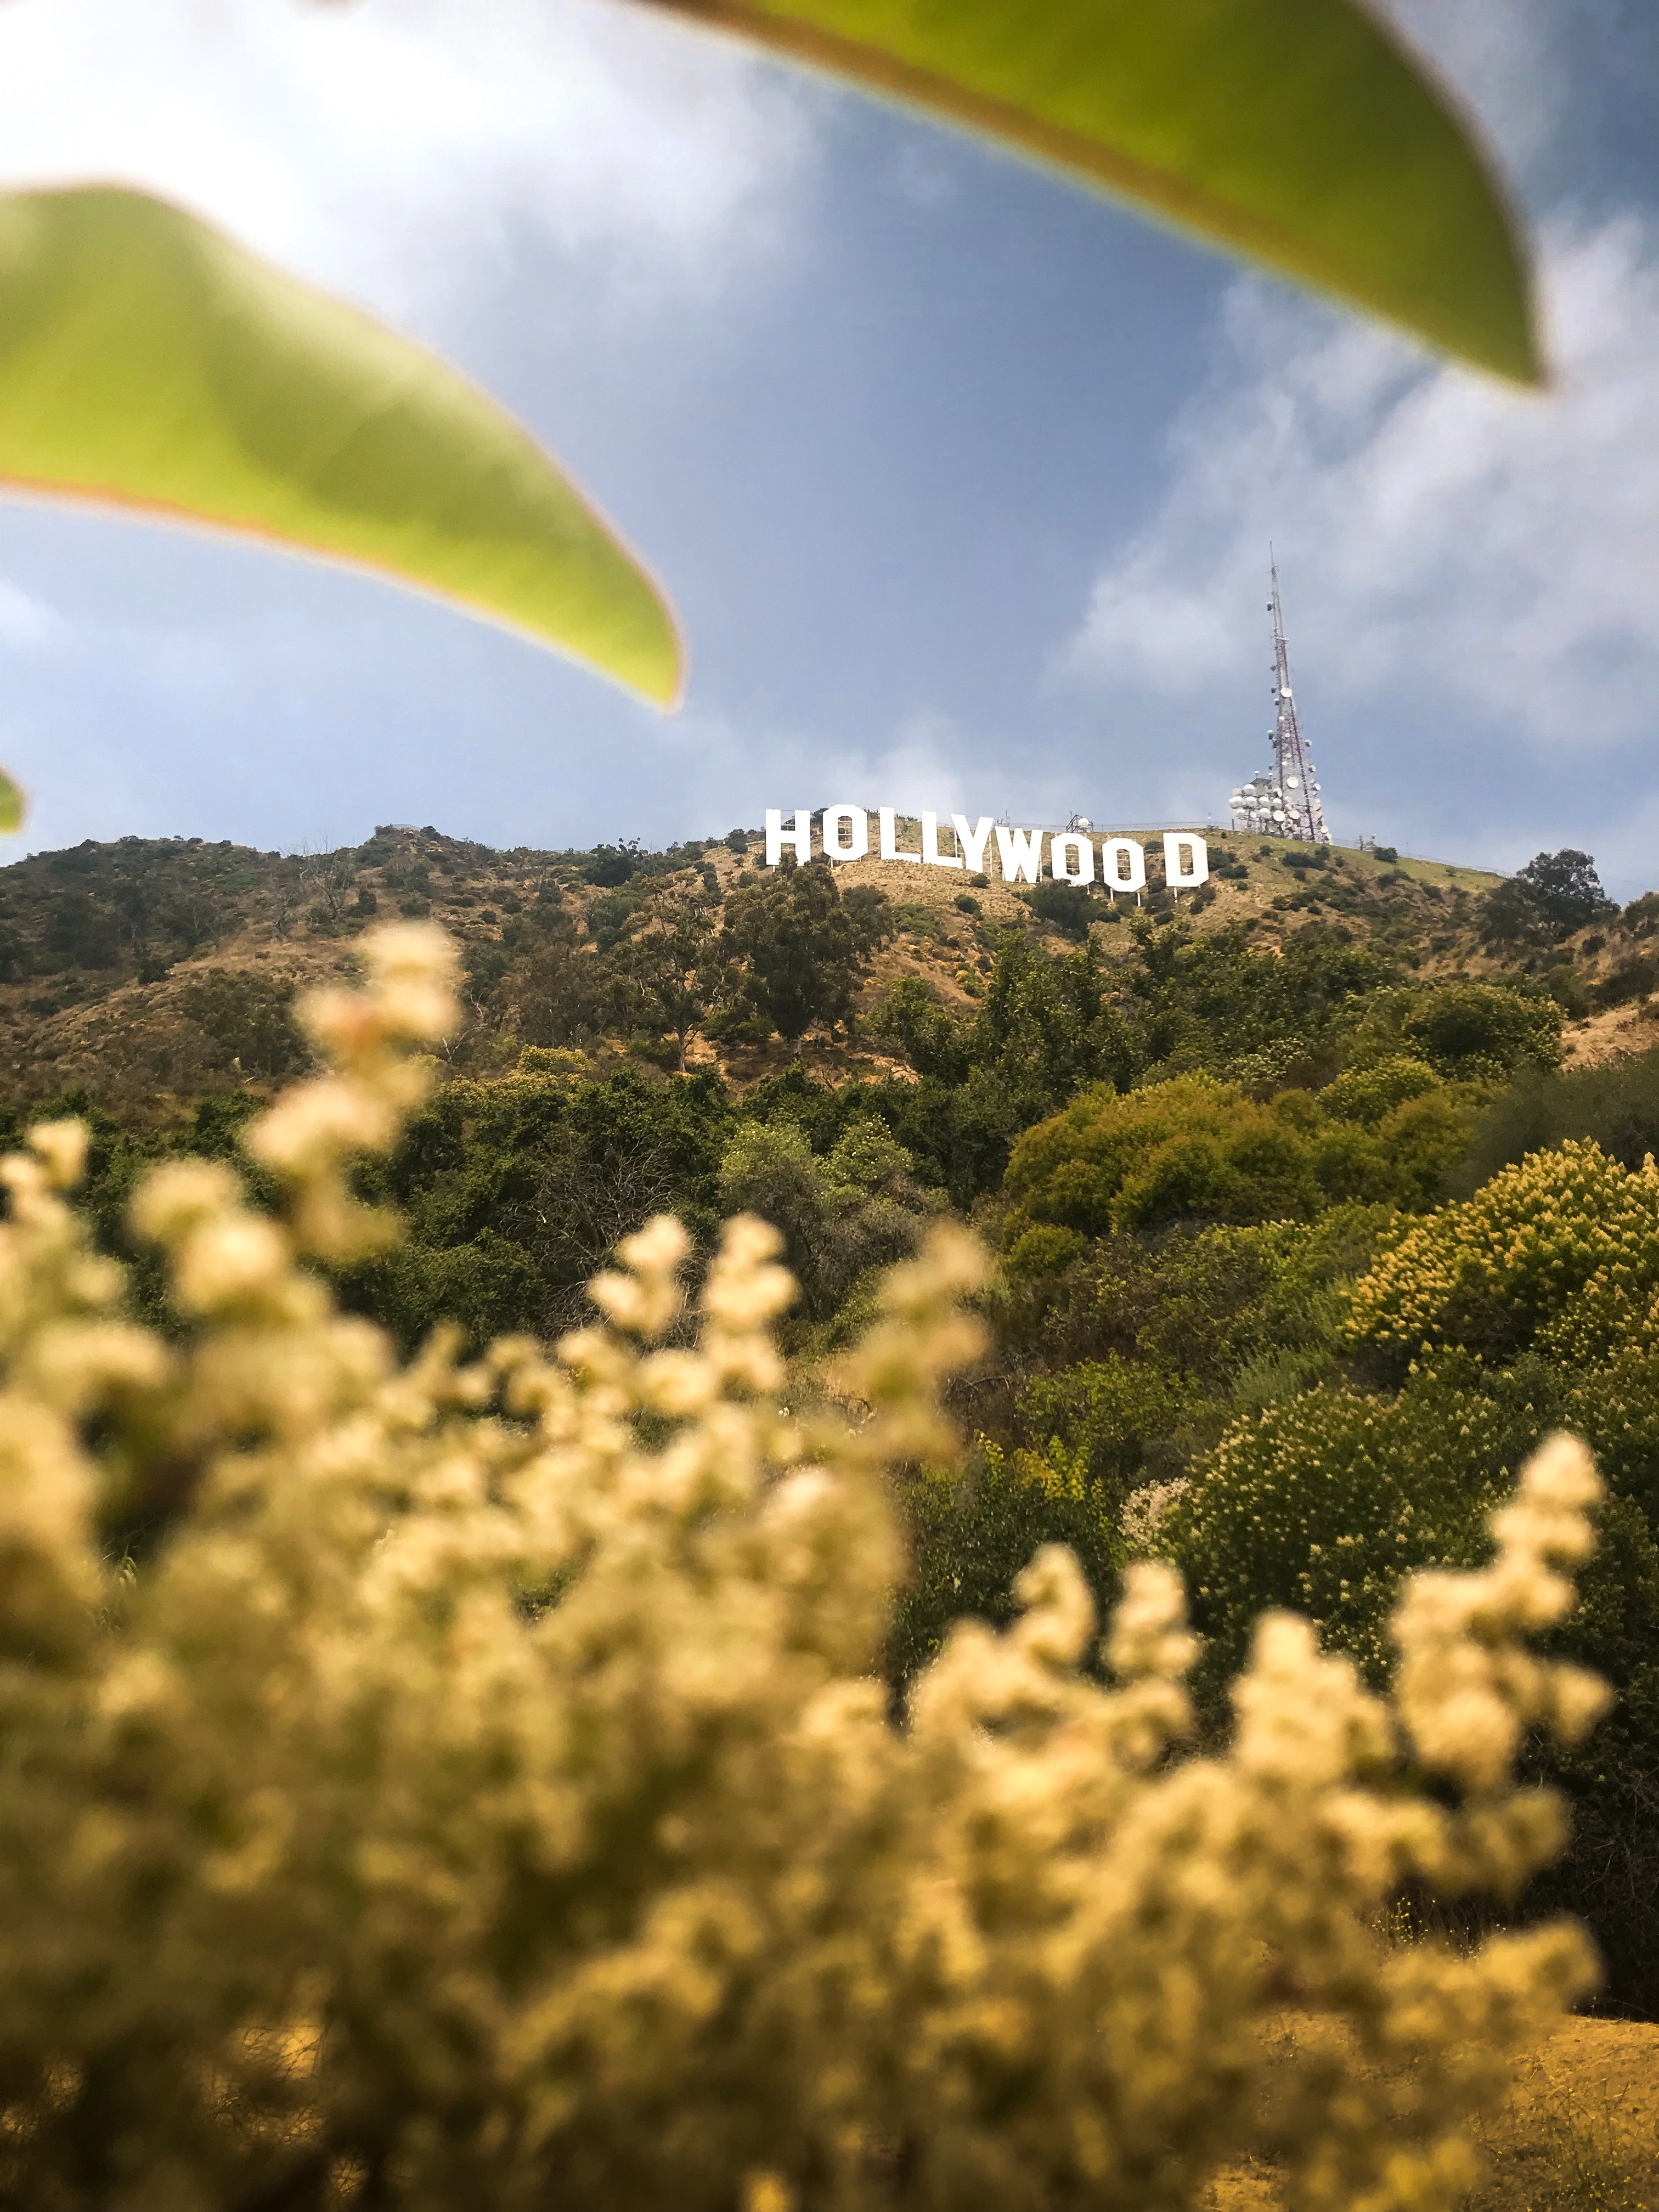 Hollywood Sign from afar with flowers